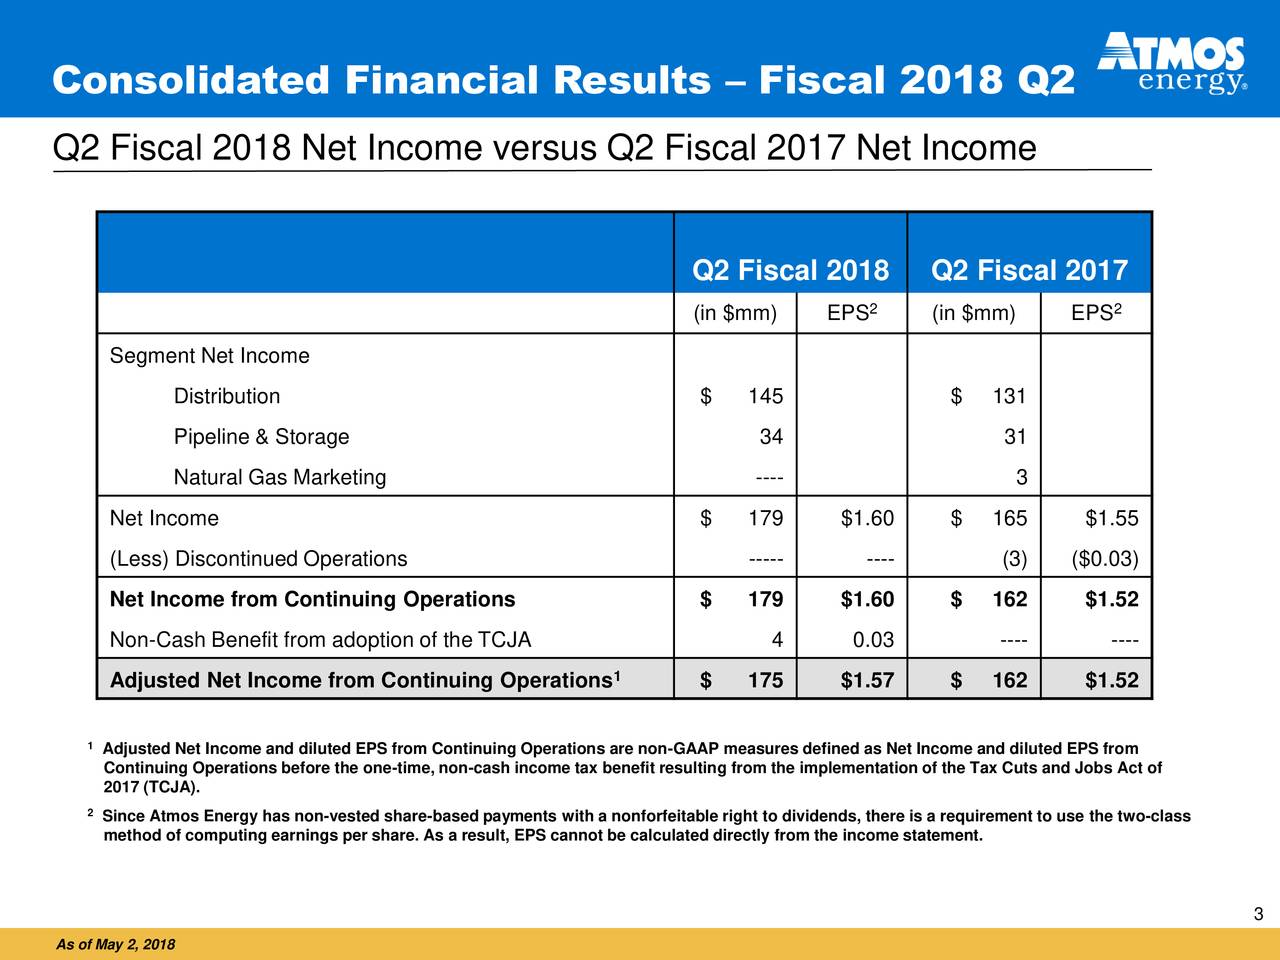 Q2 Fiscal 2018 Net Income versus Q2 Fiscal 2017 Net Income Q2 Fiscal 2018 Q2 Fiscal 2017 (in $mm) EPS 2 (in $mm) EPS 2 Segment Net Income Distribution $ 145 $ 131 Pipeline & Storage 34 31 Natural Gas Marketing ---- 3 Net Income $ 179 $1.60 $ 165 $1.55 (Less) Discontinued Operations ----- ---- (3) ($0.03) Net Income from Continuing Operations $ 179 $1.60 $ 162 $1.52 Non-Cash Benefit from adoption of the TCJA 4 0.03 ---- ---- Adjusted Net Income from Continuing Operations 1 $ 175 $1.57 $ 162 $1.52 1Adjusted Net Income and diluted EPS from Continuing Operations are non-GAAP measures defined as Net Income and diluted EPS from Continuing Operations before the one-time, non-cash income tax benefit resulting from the implementation of the Tax Cuts and Jobs Act of 2017 (TCJA). 2Since Atmos Energy has non-vested share-based payments with a nonforfeitable right to dividends, there is a requirement to use the two-class method of computing earnings per share. As a result, EPS cannot be calculated directly from the income statement. 3 As of May 2, 2018